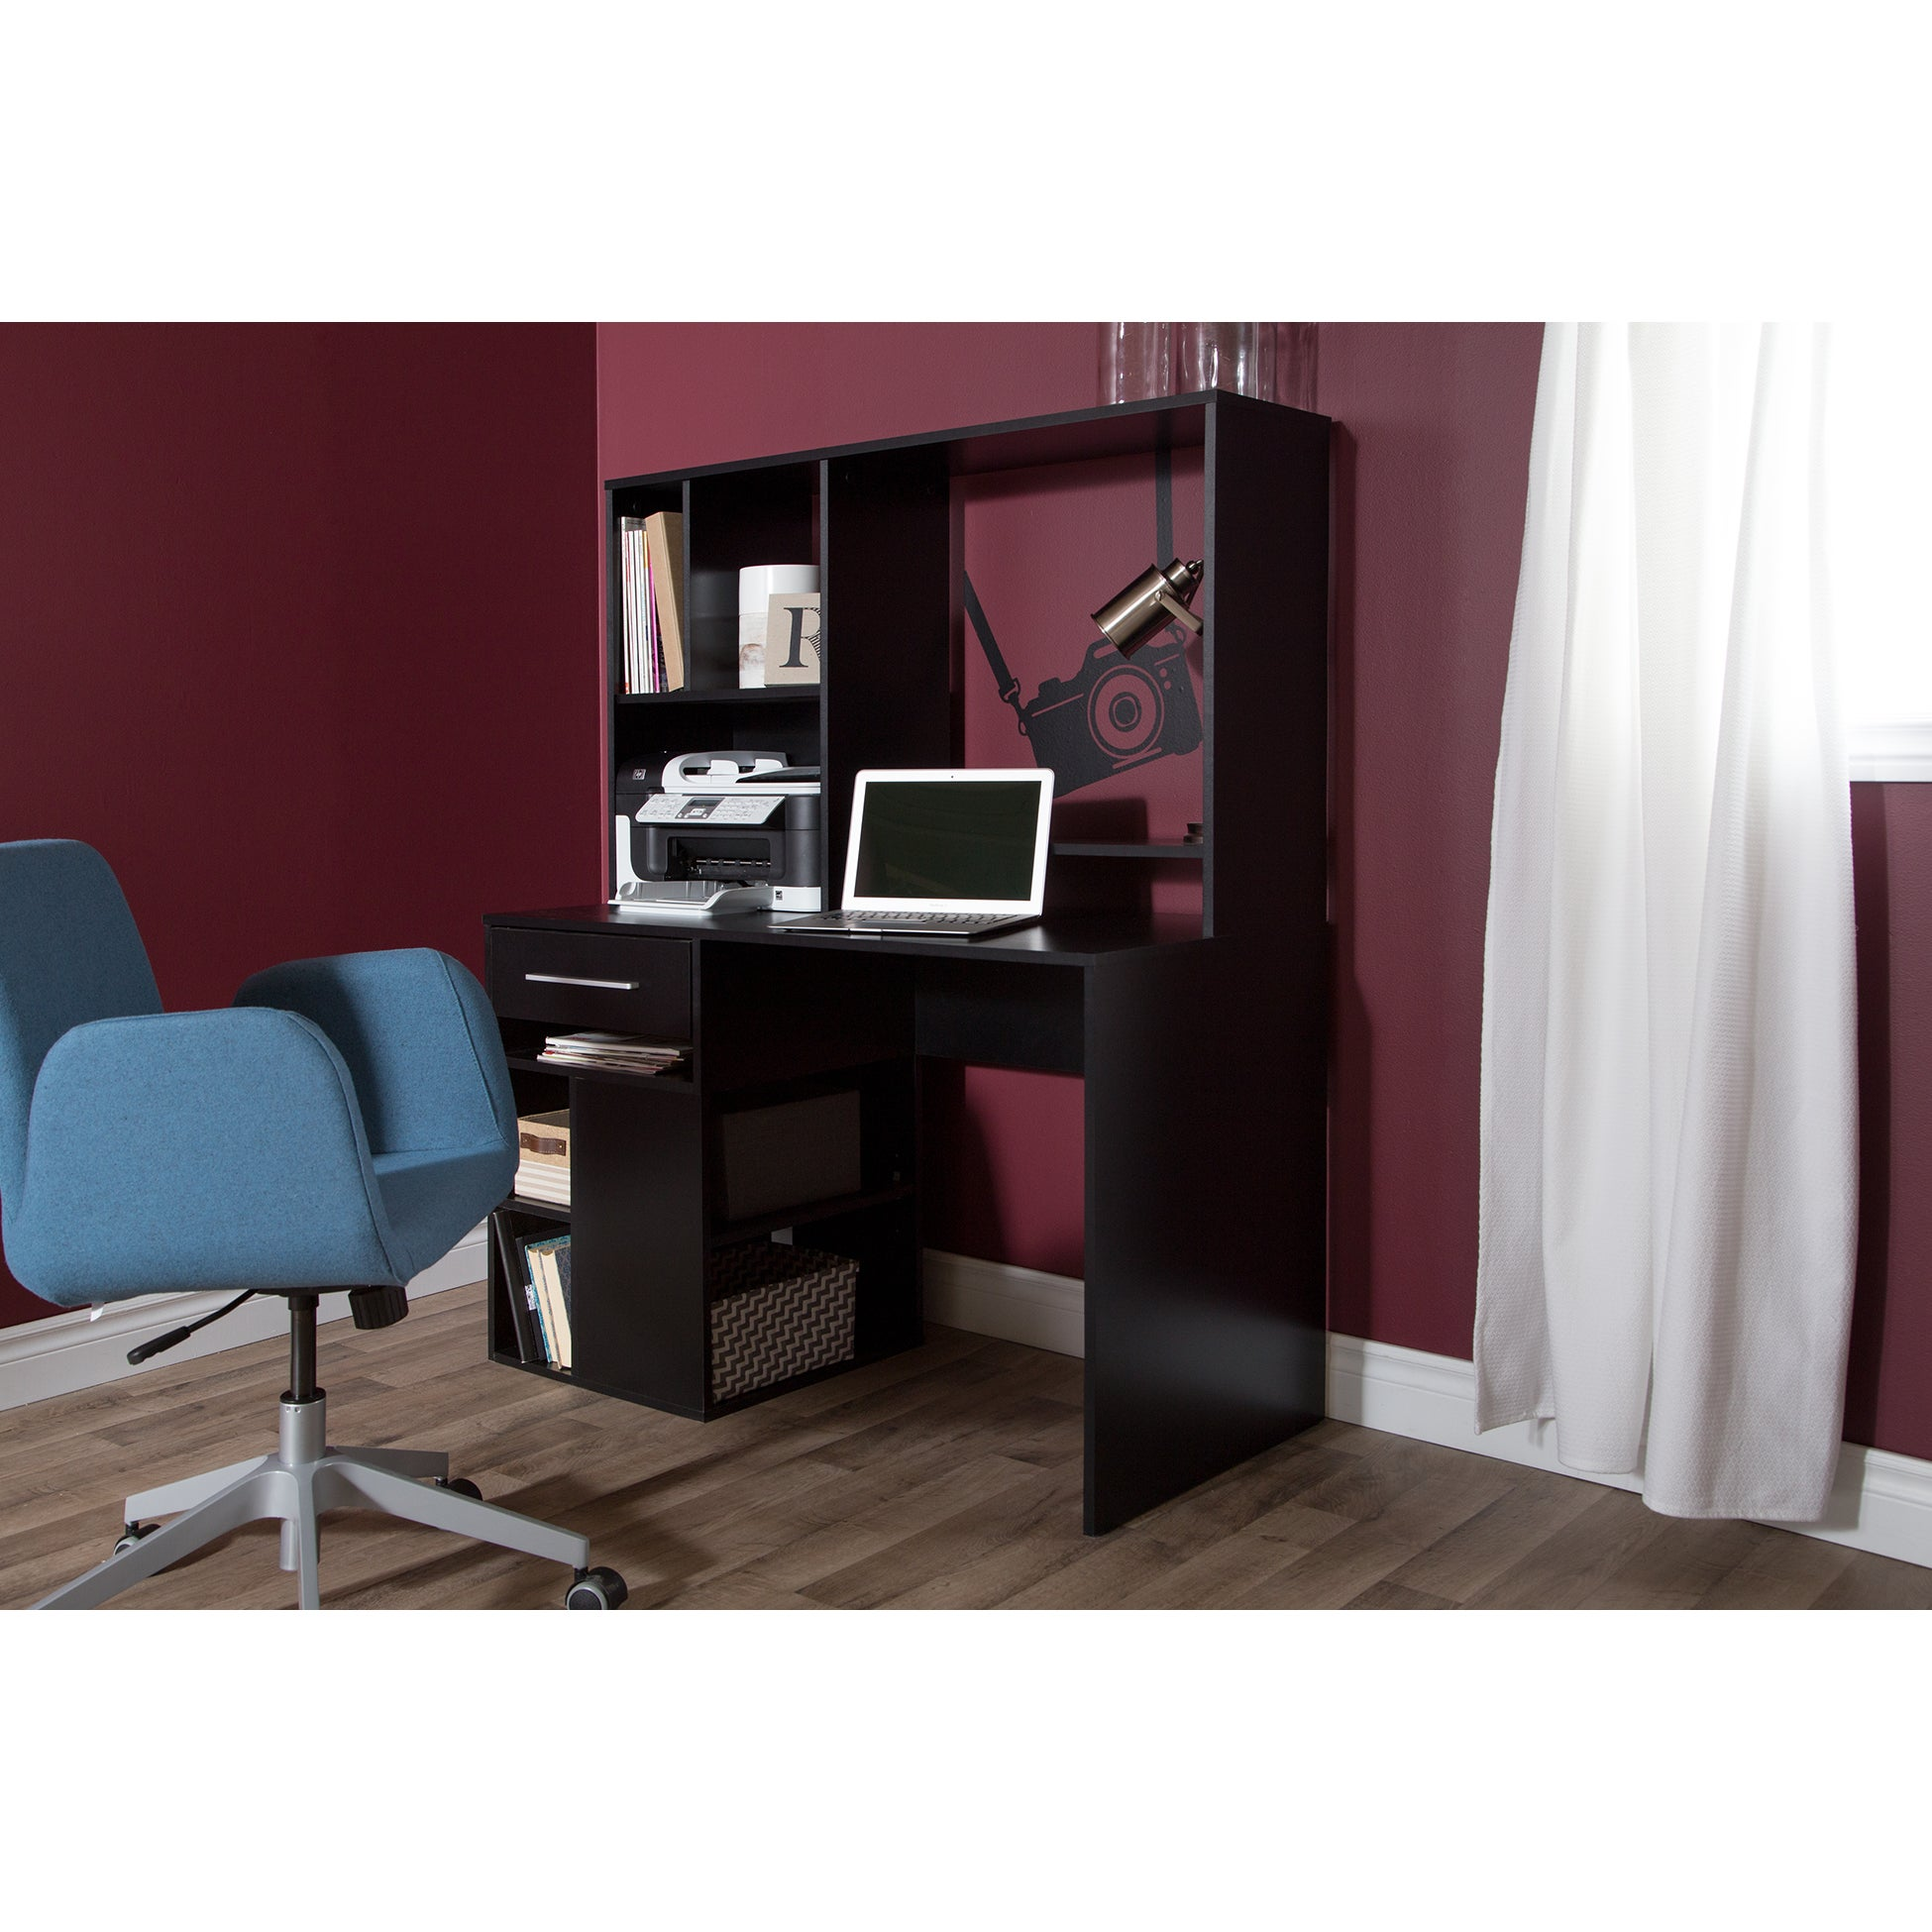 South Shore Annexe Home Office Computer Desk N/A